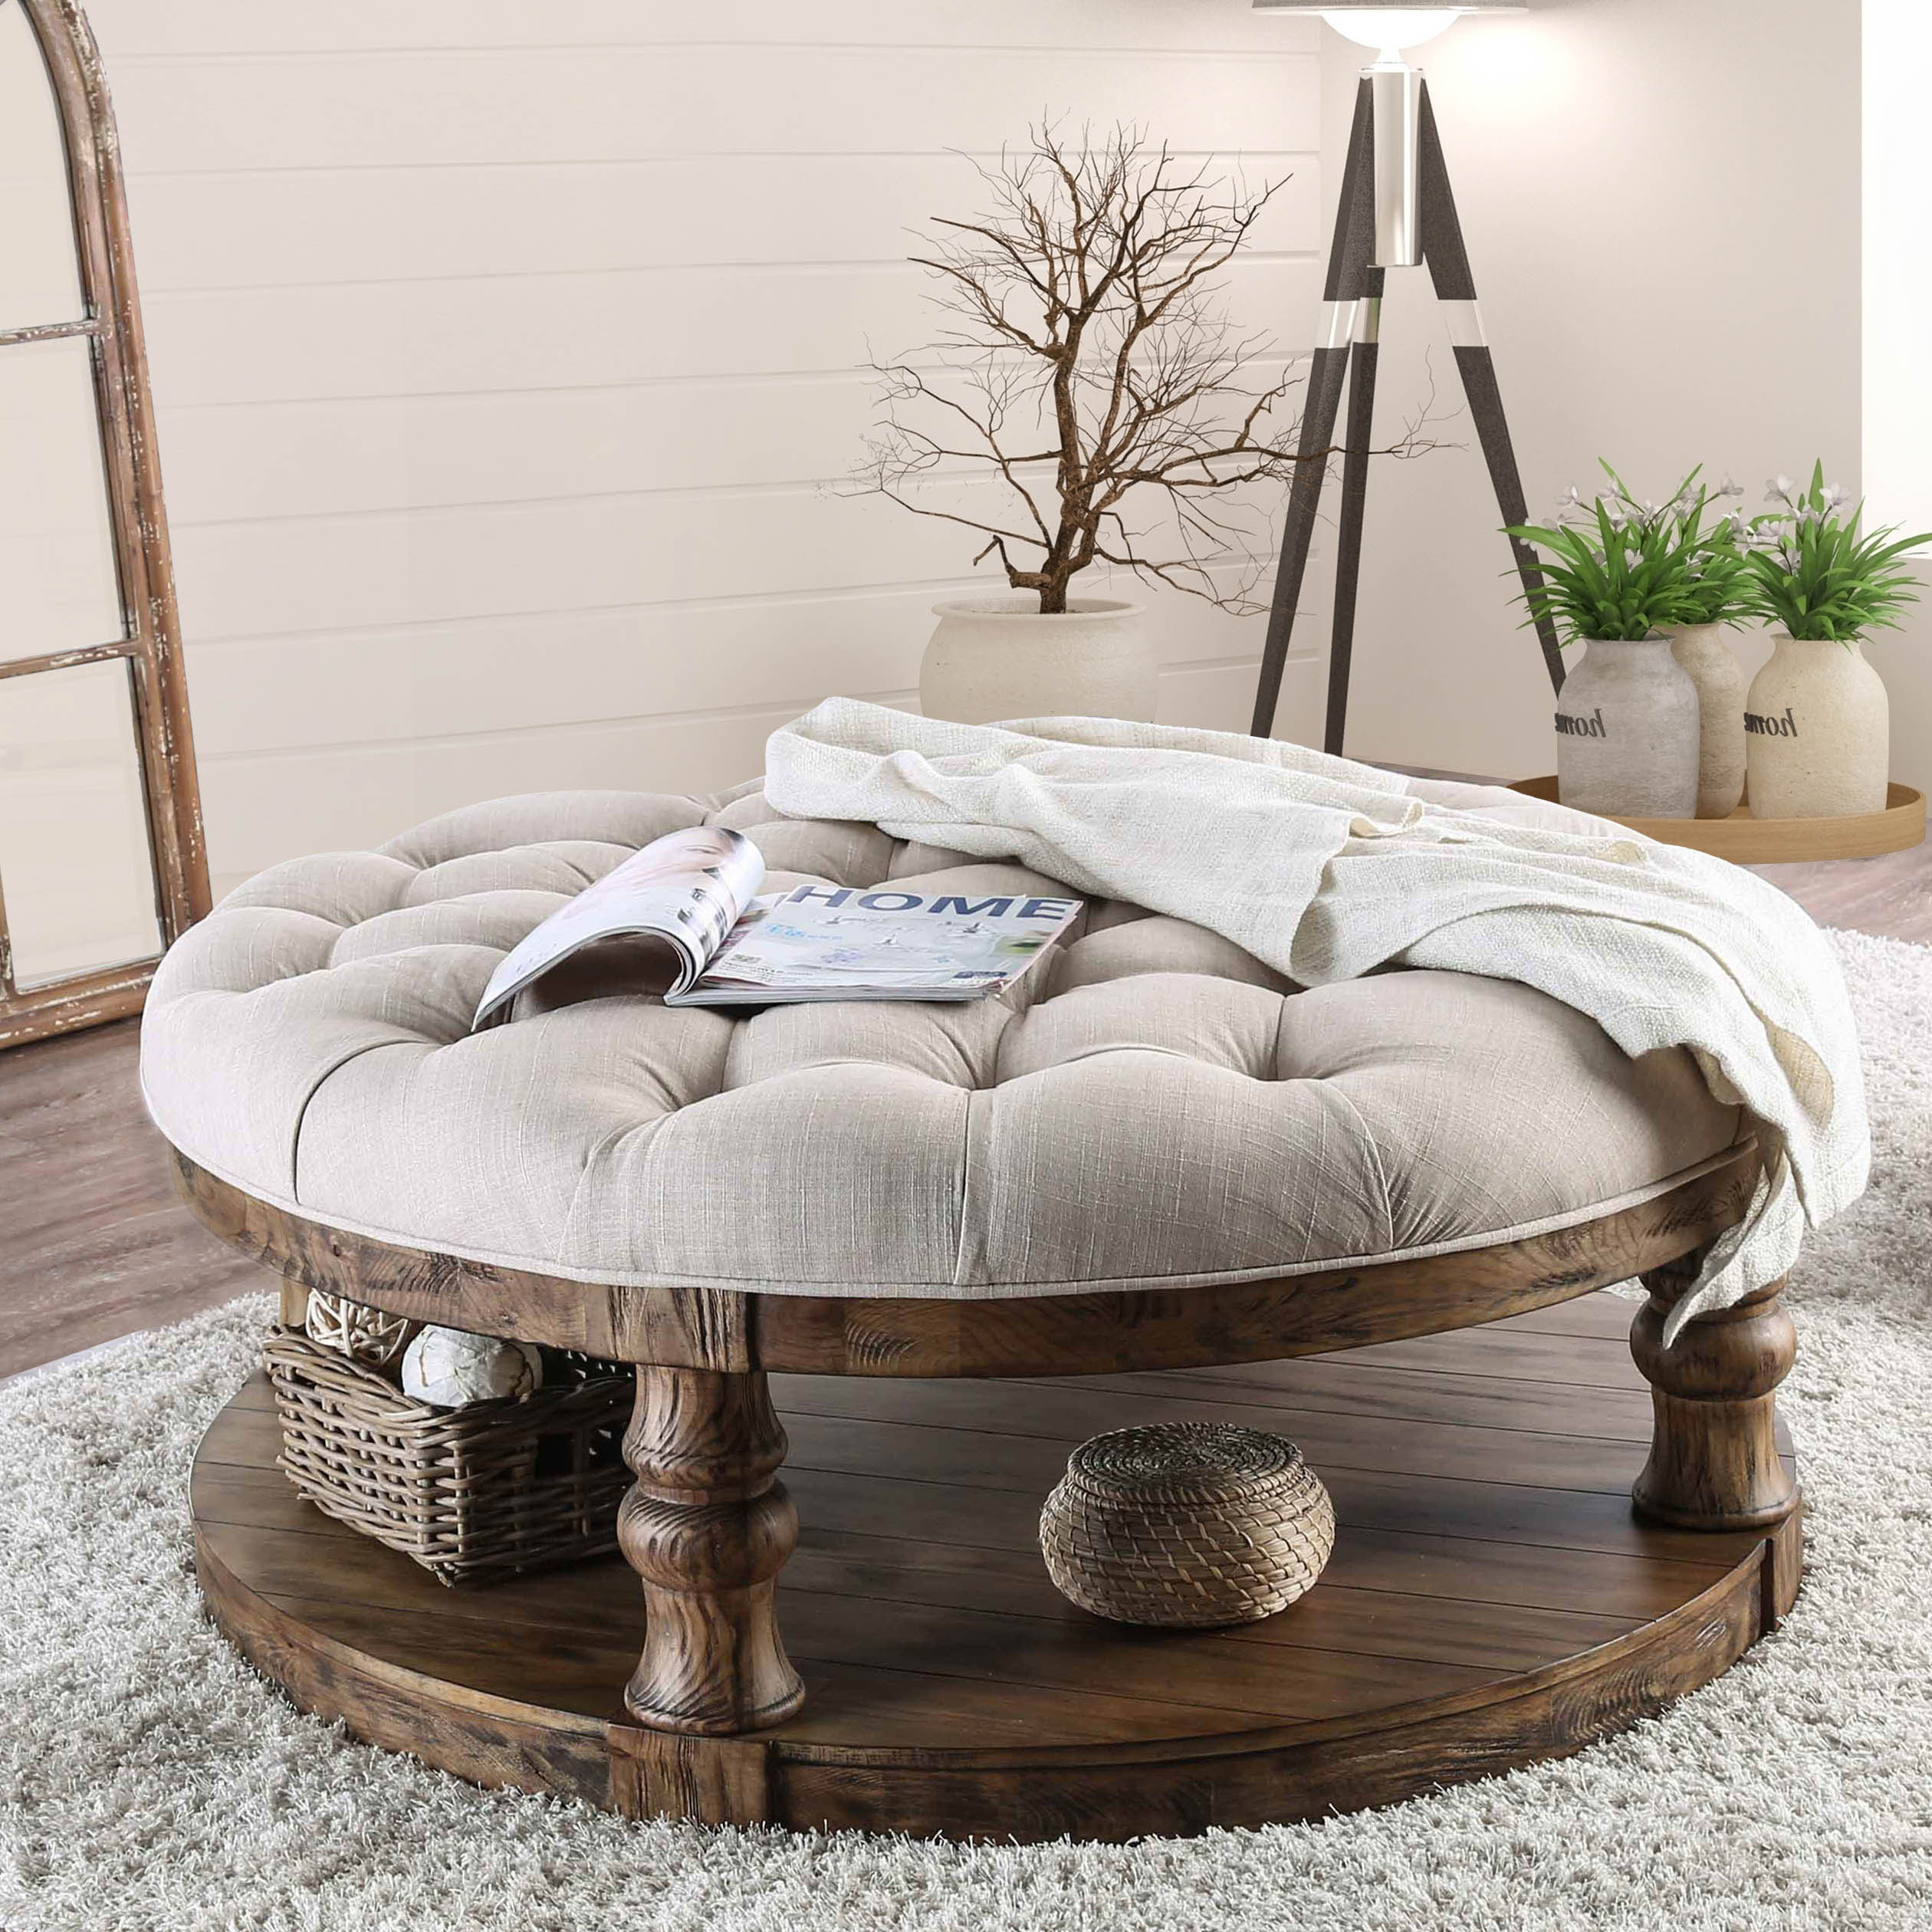 Wayfair Gracie Oaks Amstel Farmhouse Tufted Coffee Table pertaining to measurements 2520 X 2520